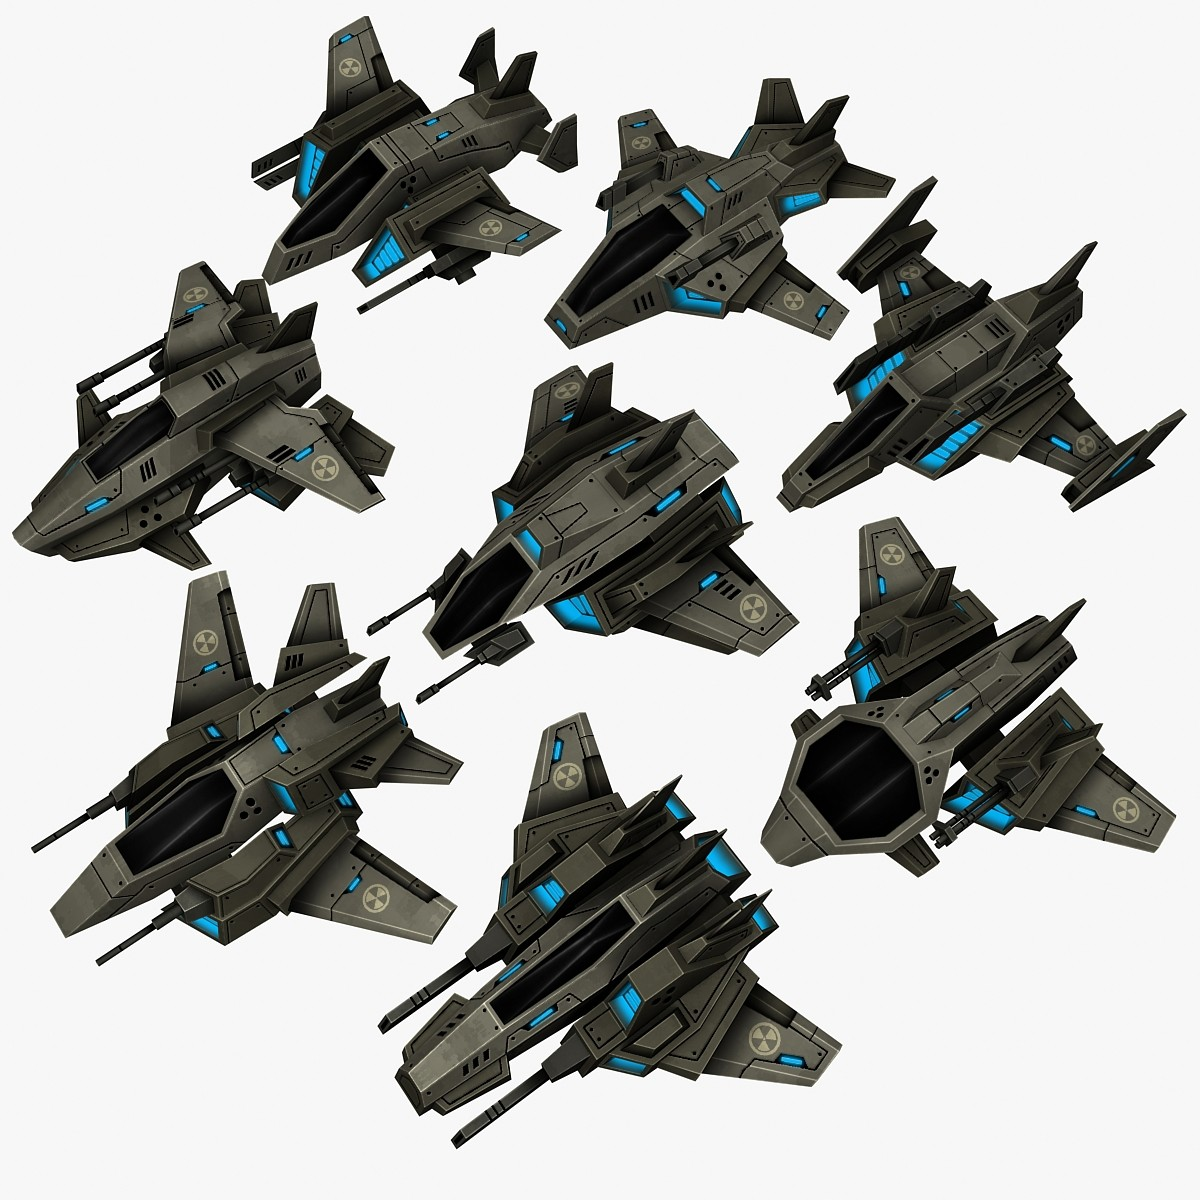 8_small_space_ships_preview_0.jpg